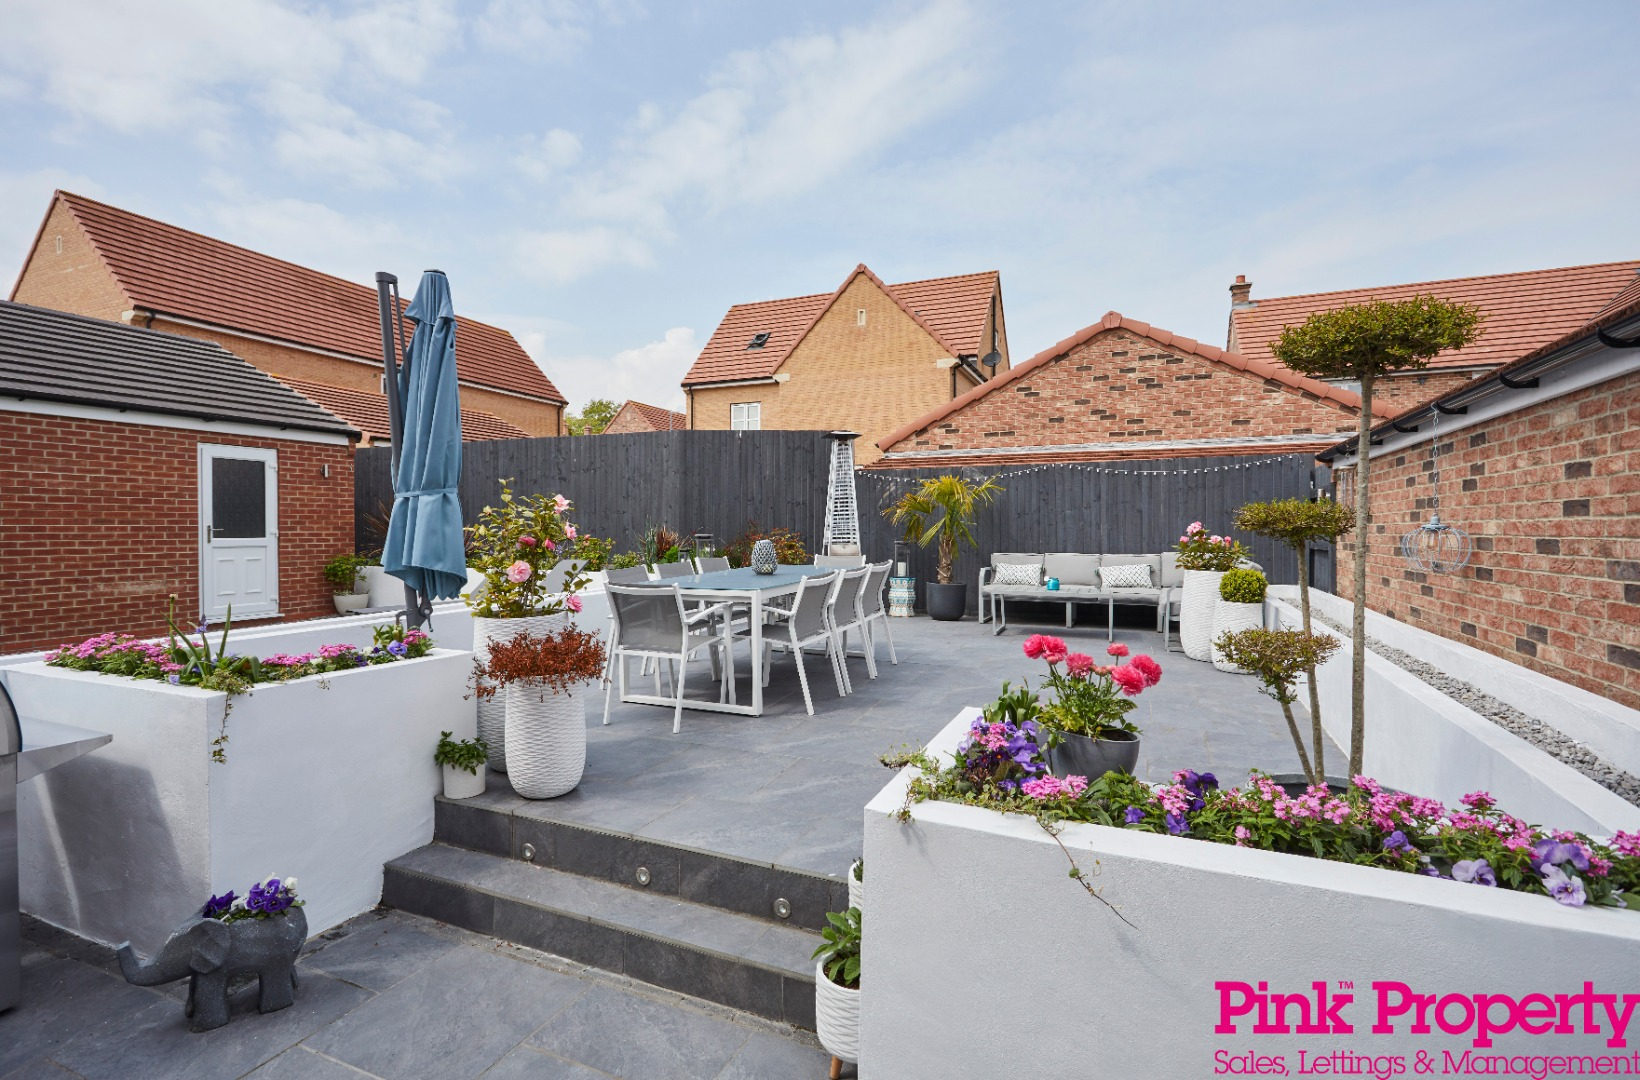 5 bed house for sale in Nursery Close, Swanland, HU14 9